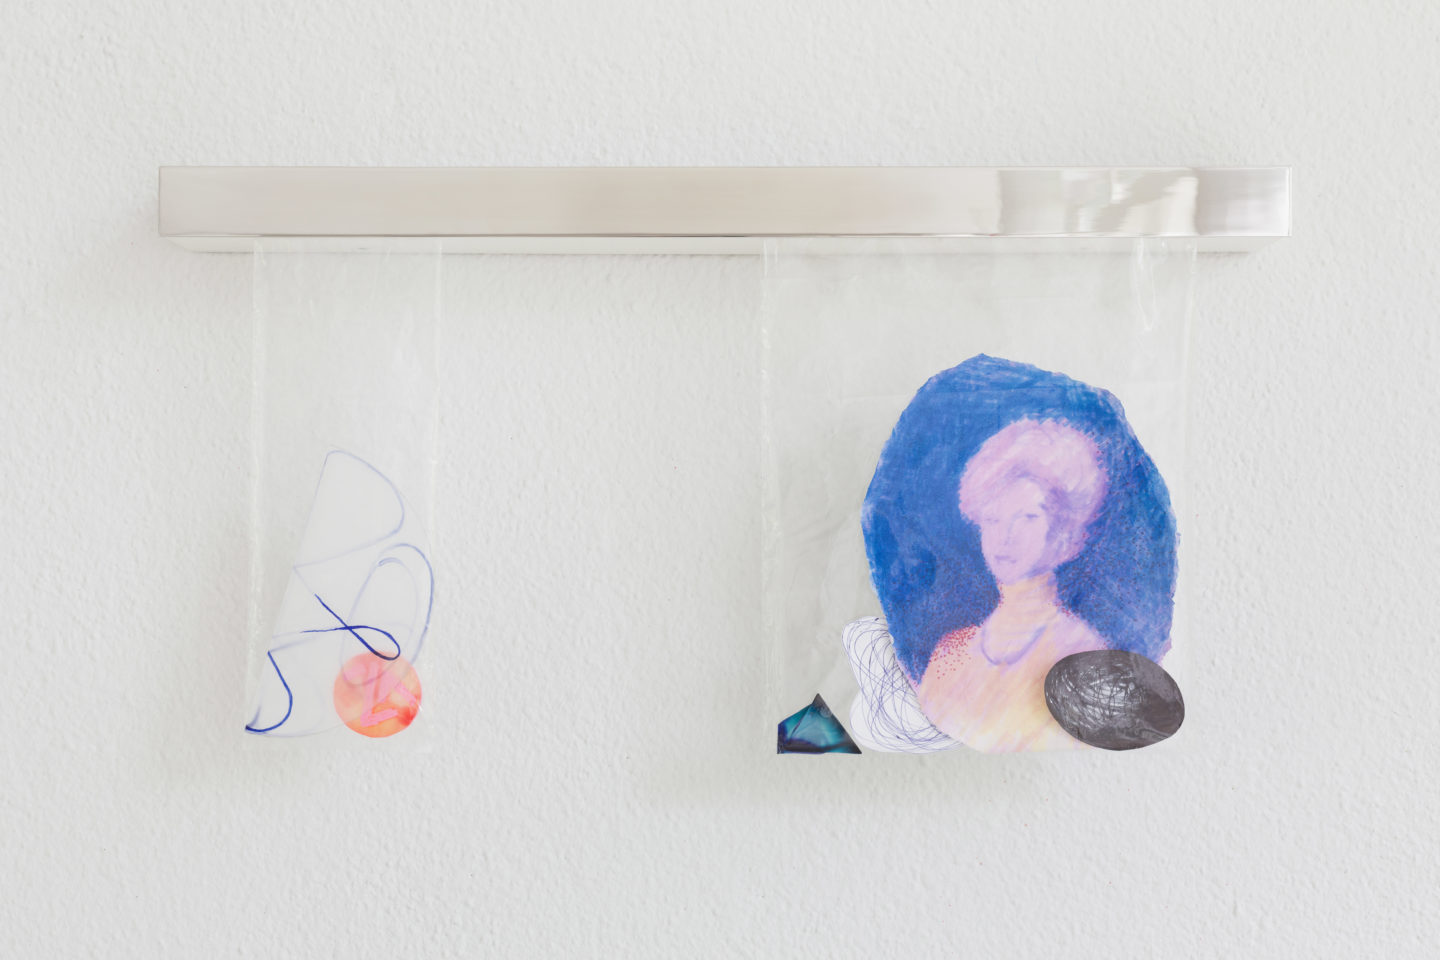 Exhibition View Bonnie Camplin «EPIC TIME – Sweetie Bags (Sister from Another Mister), 2018» at Kunsthaus Glarus / Photo: Gunnar Meier / Courtesy: the artist and Kunsthaus Glarus